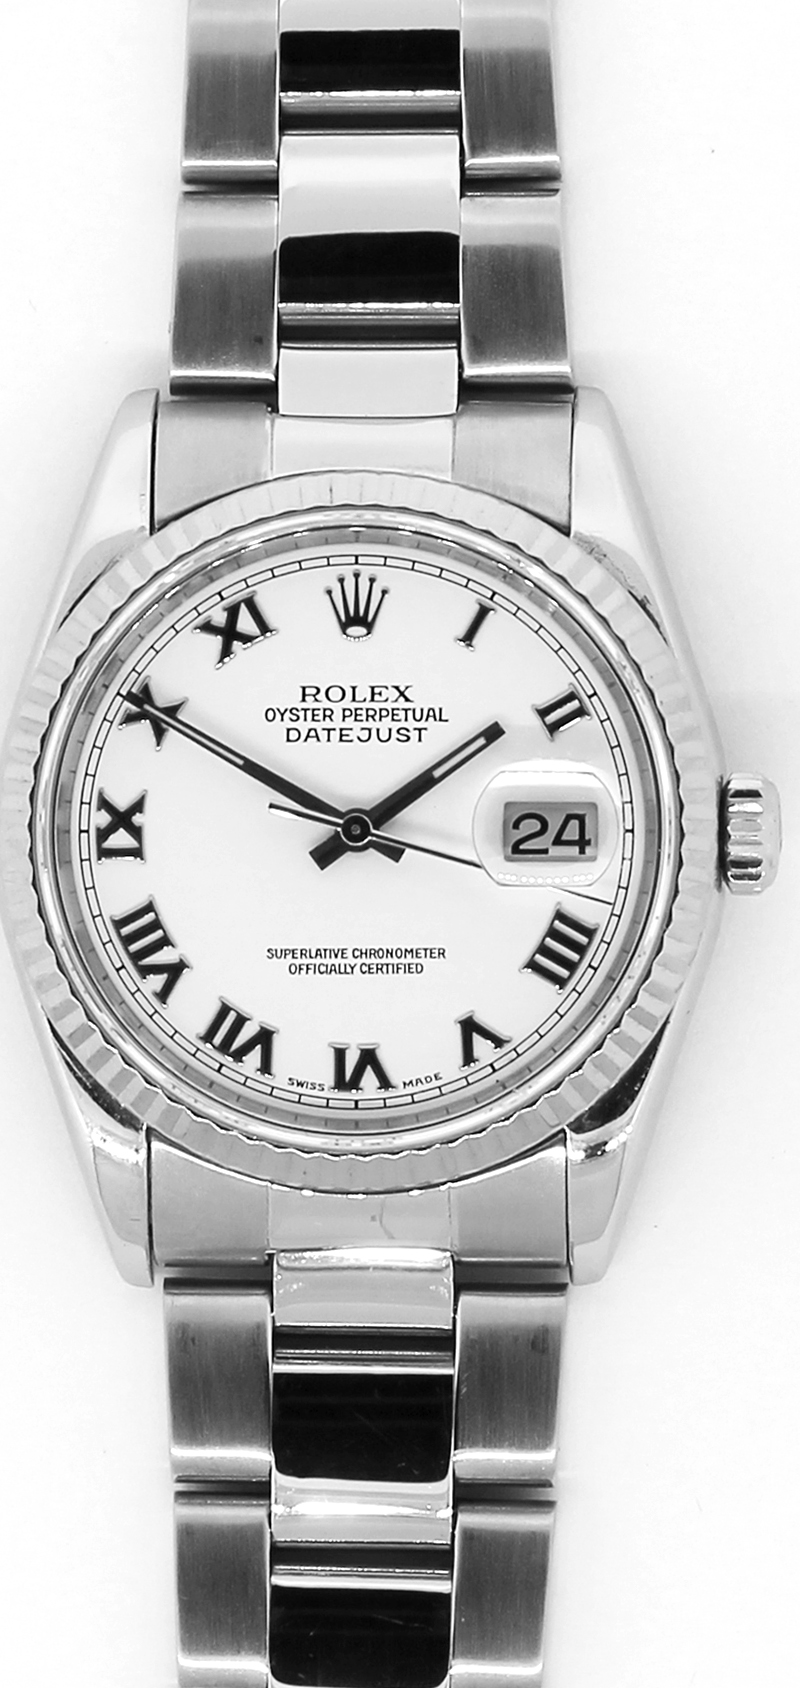 Rolex Steel Datejust White Bold Roman Dial 16200 with Box & Booklets